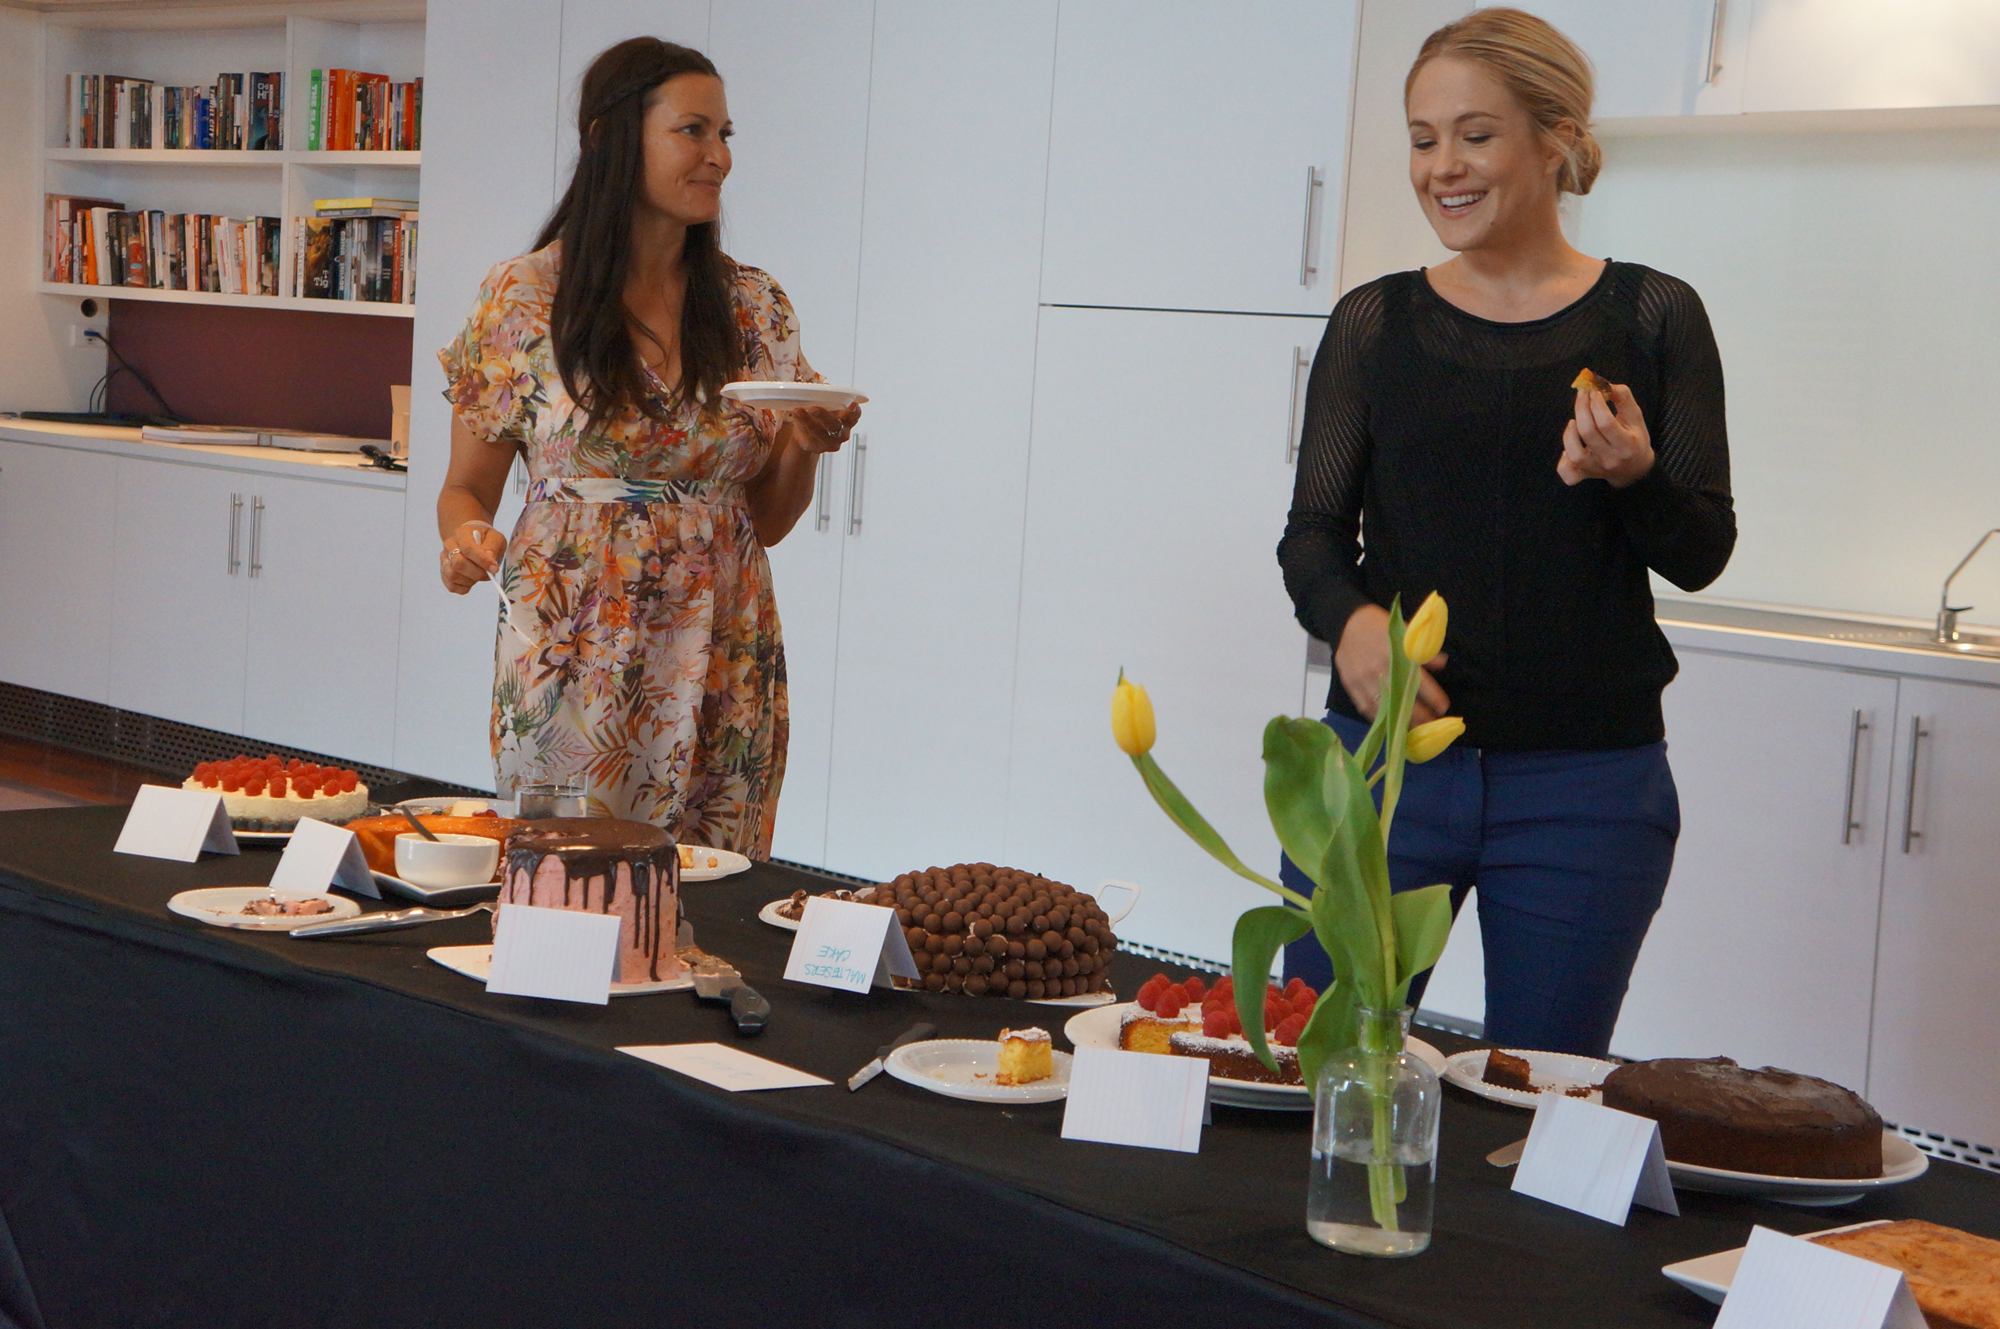 Cake tasting, serious business! Lee Holmes & Kate Gibbs get stuck in.